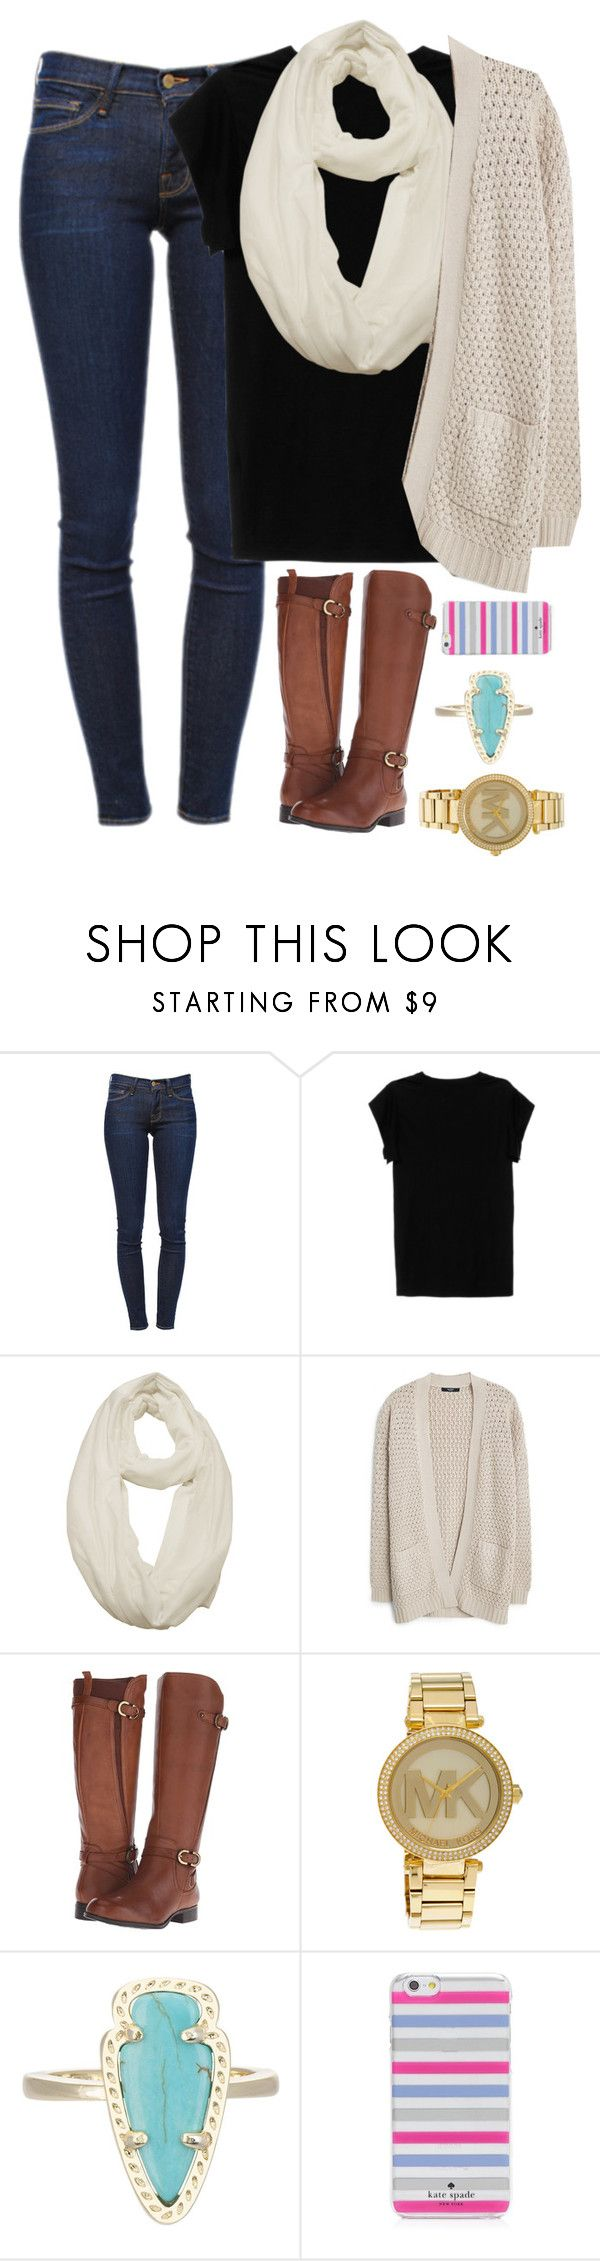 """Untitled #639"" by evieleet ❤ liked on Polyvore featuring Frame Denim, Isabel Marant, MANGO, Naturalizer, Michael Kors, Kendra Scott and Kate Spade"